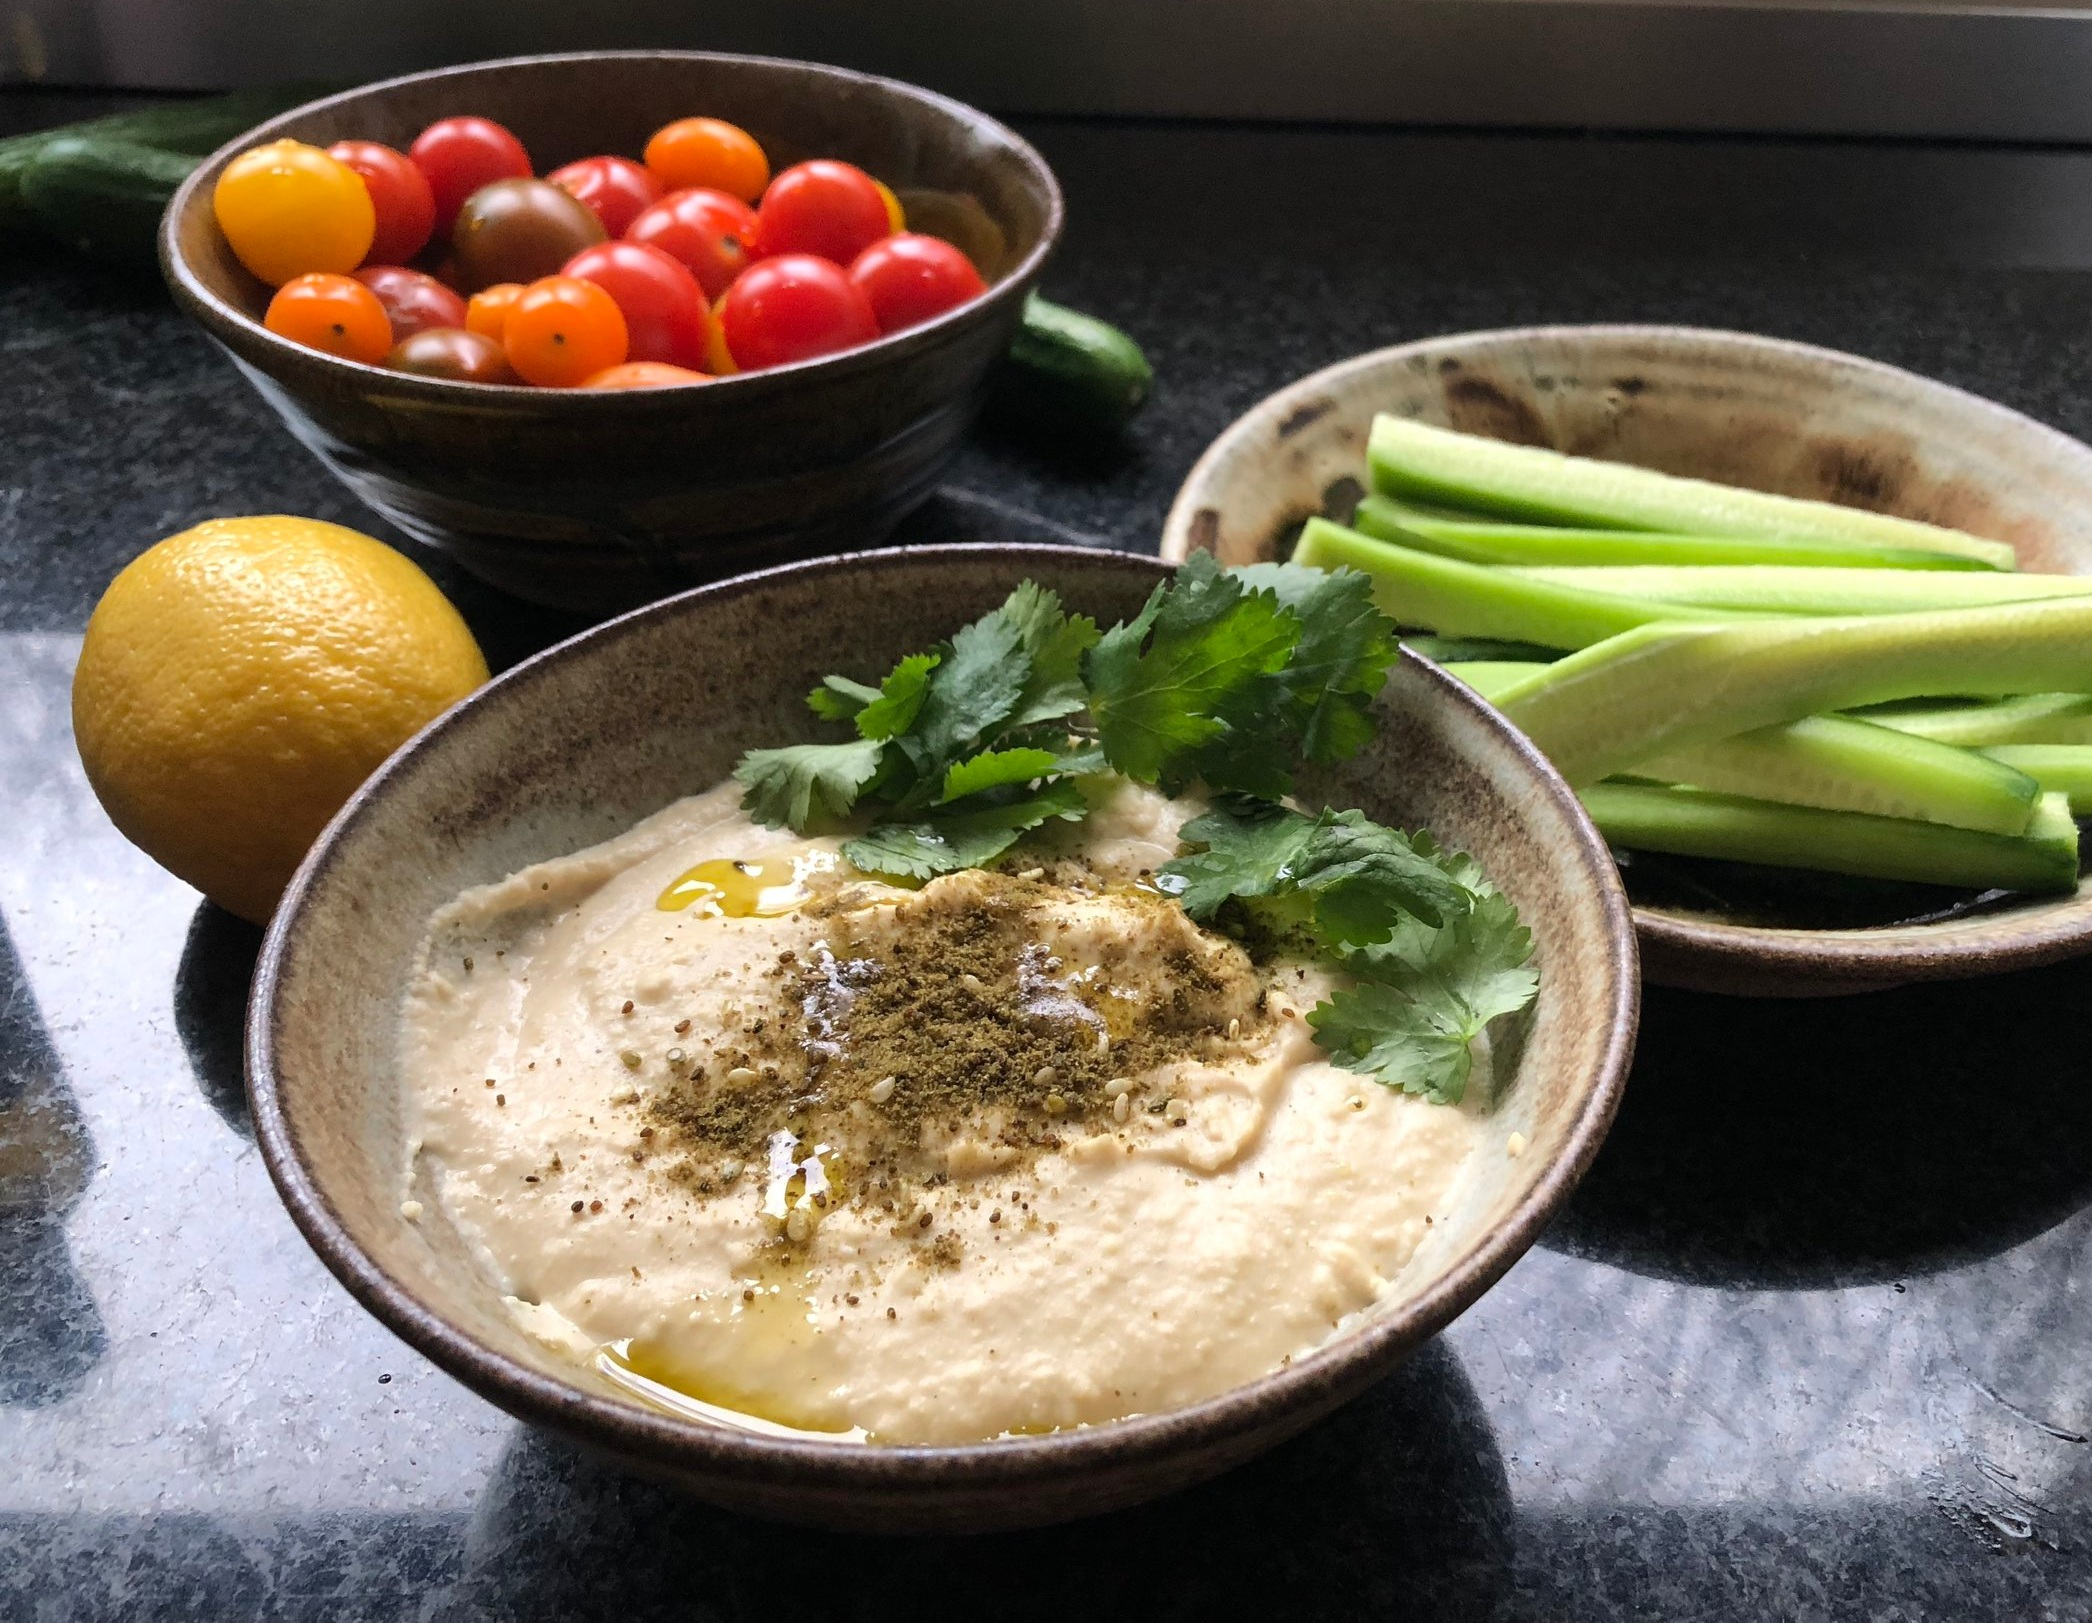 Delicious home-made hummus in no time